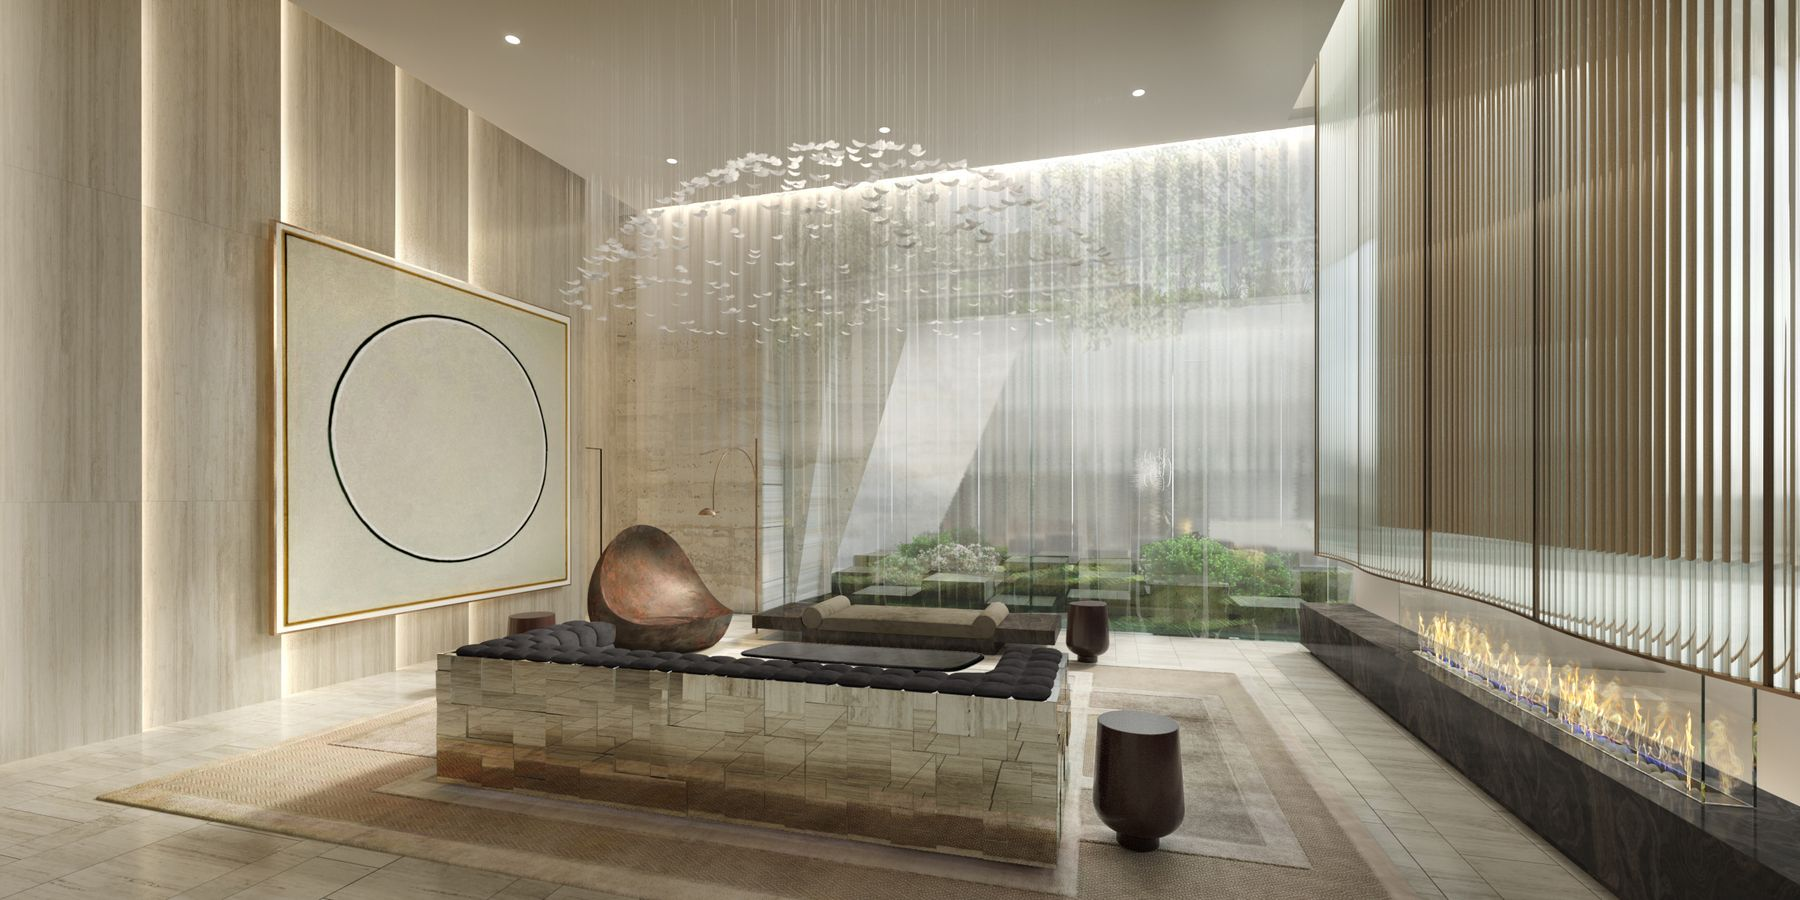 High Line Lobby Preview the Over-The-Top Amenities Coming to 15 Hudson Yards Related Companies Oxford Properties Rockwell Group Diller Scofidio + Renfro